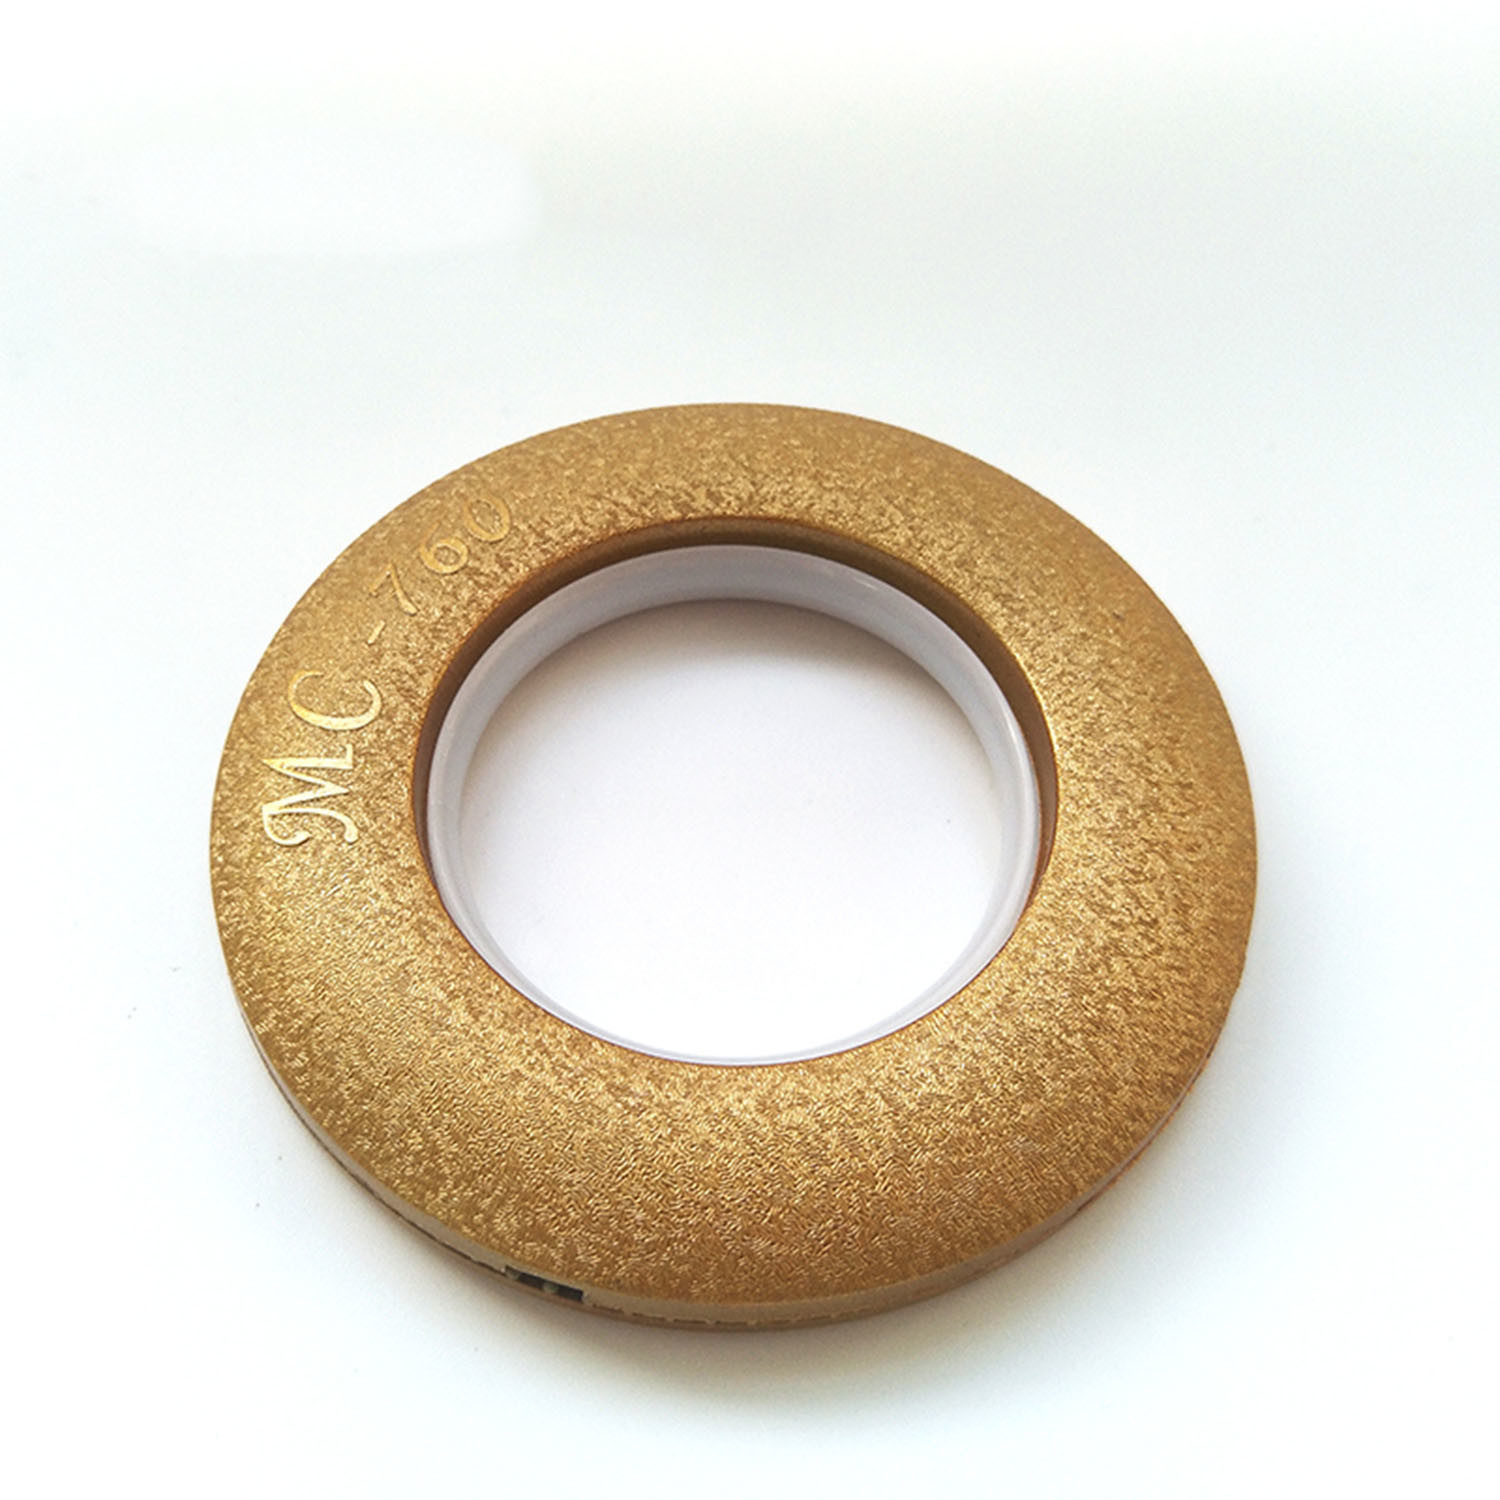 Strict Qc 100 Top Quality Shower Curtain Rings